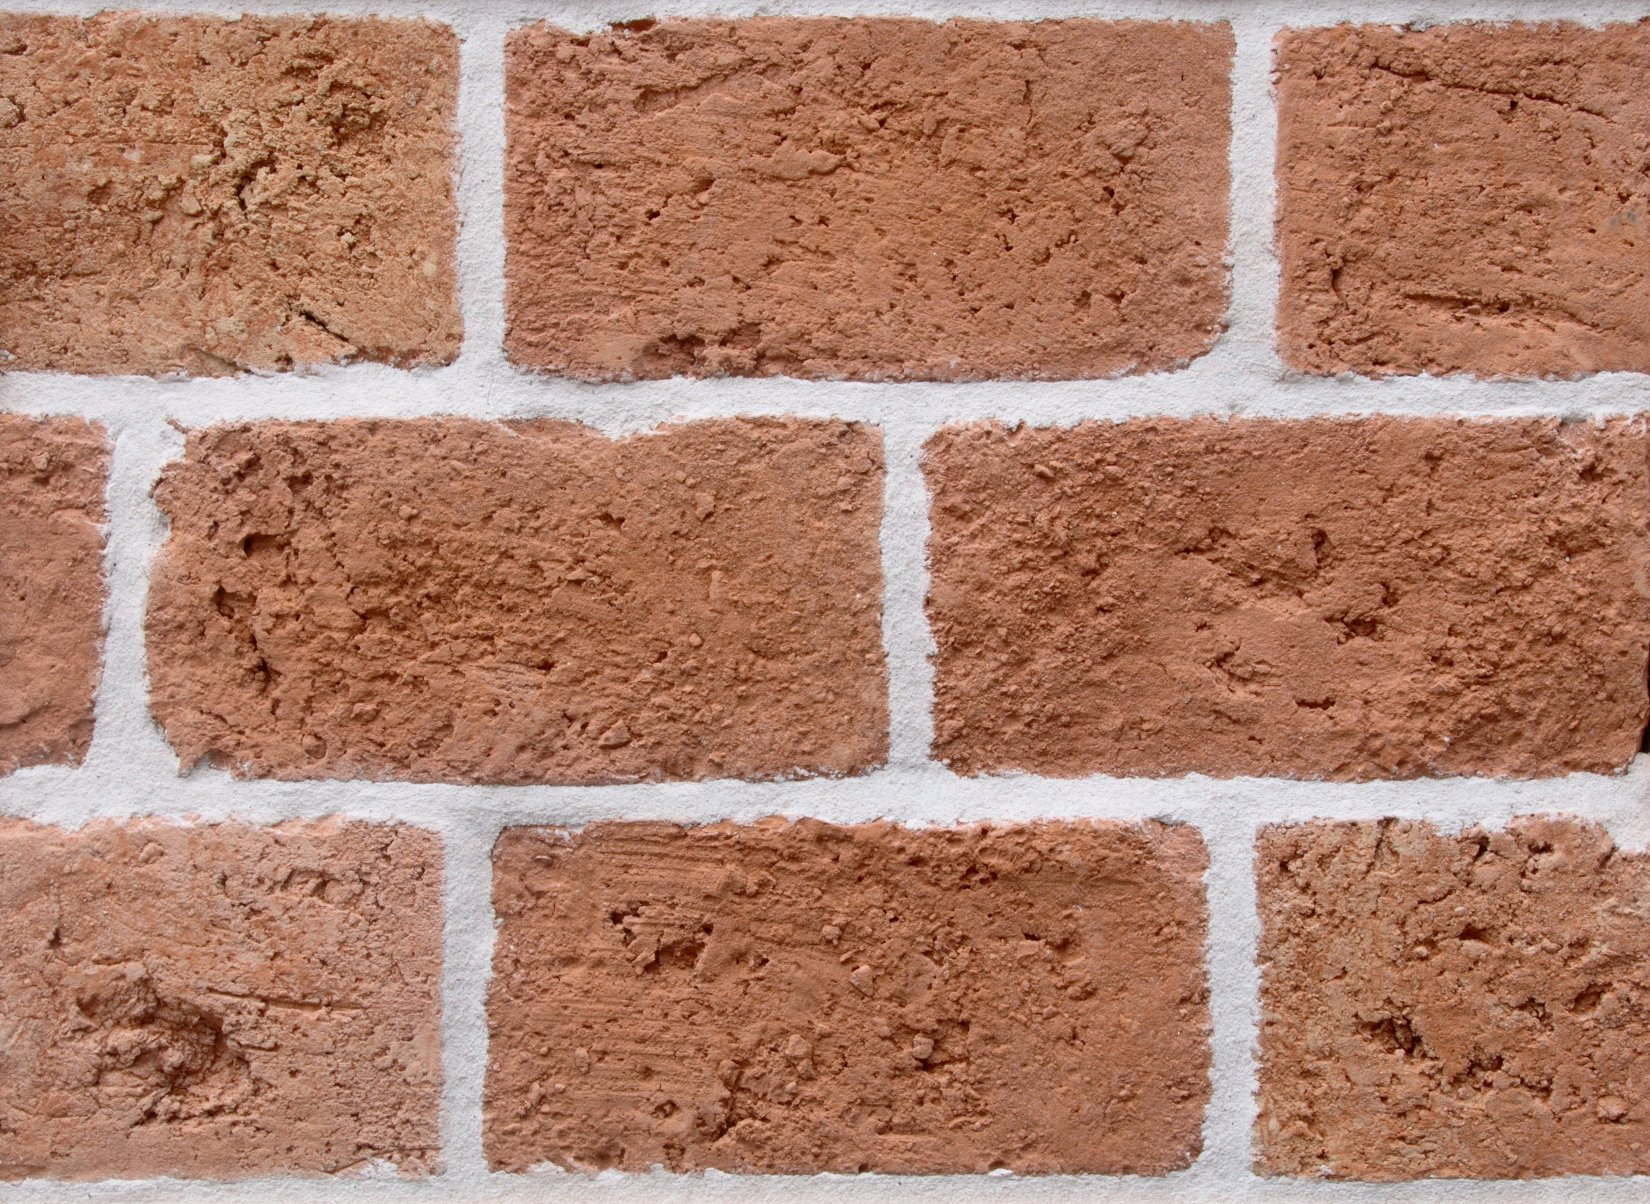 Brick Texture, Abstract, Stability, Solid, Row, HQ Photo